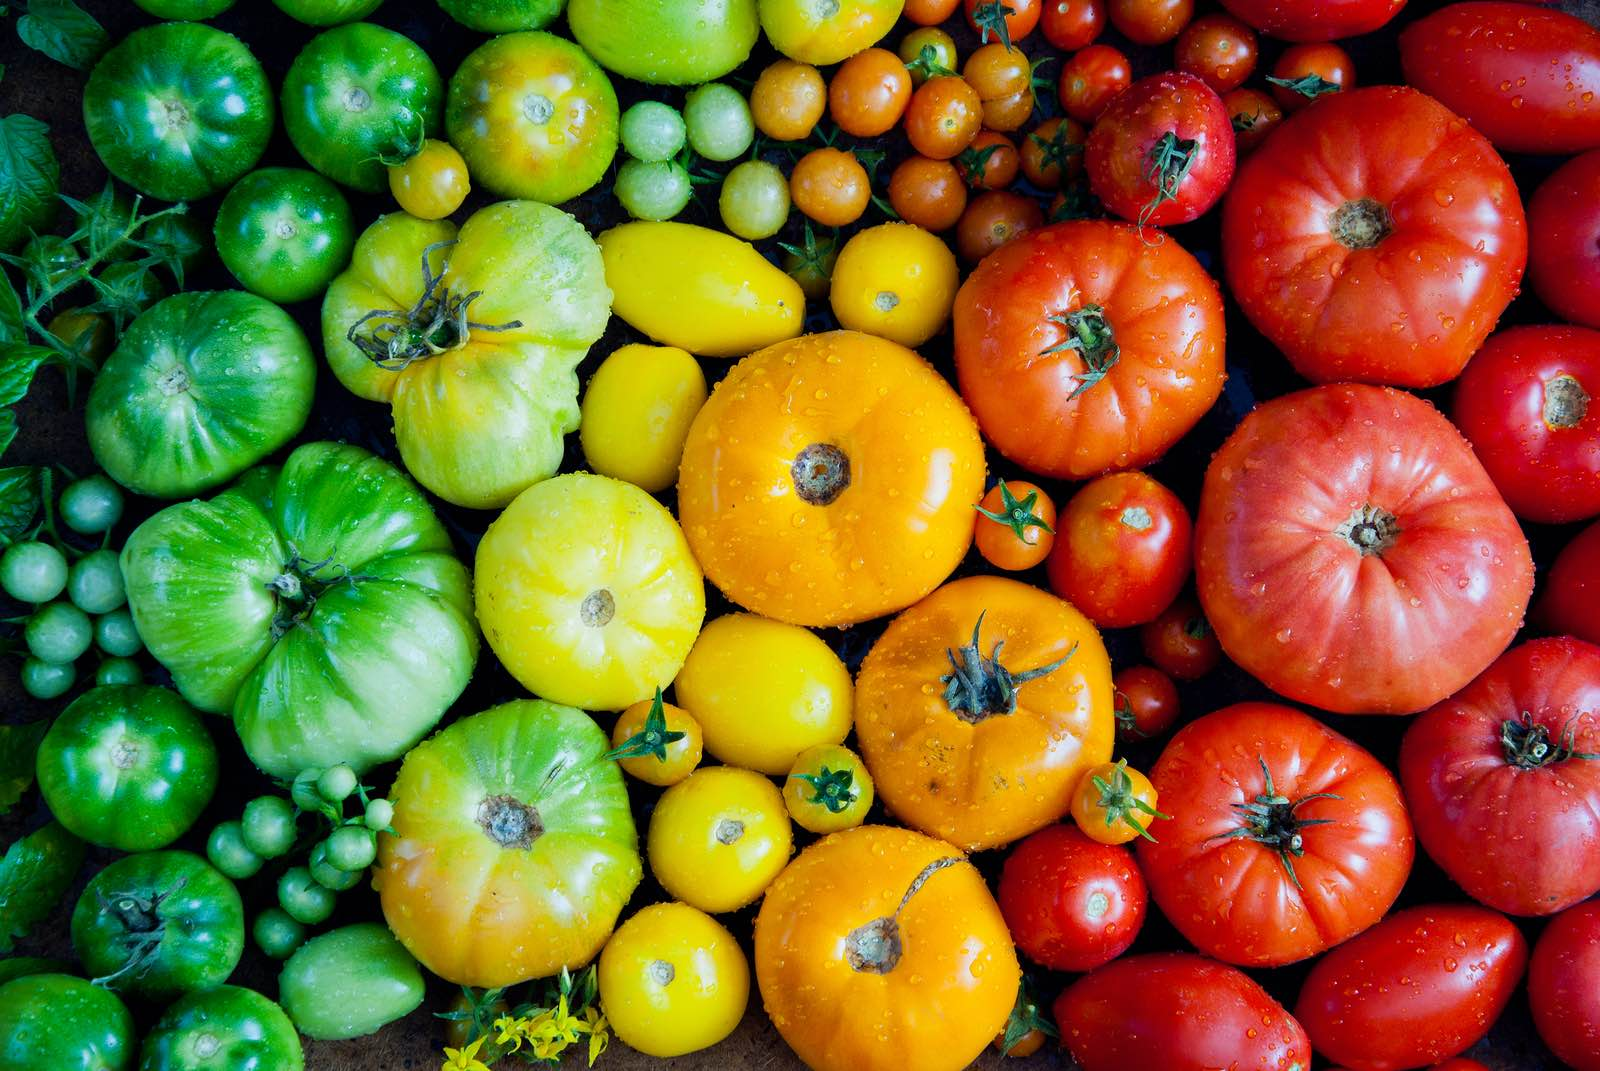 Farmer's Markets in Boston: A Different Way to Shop